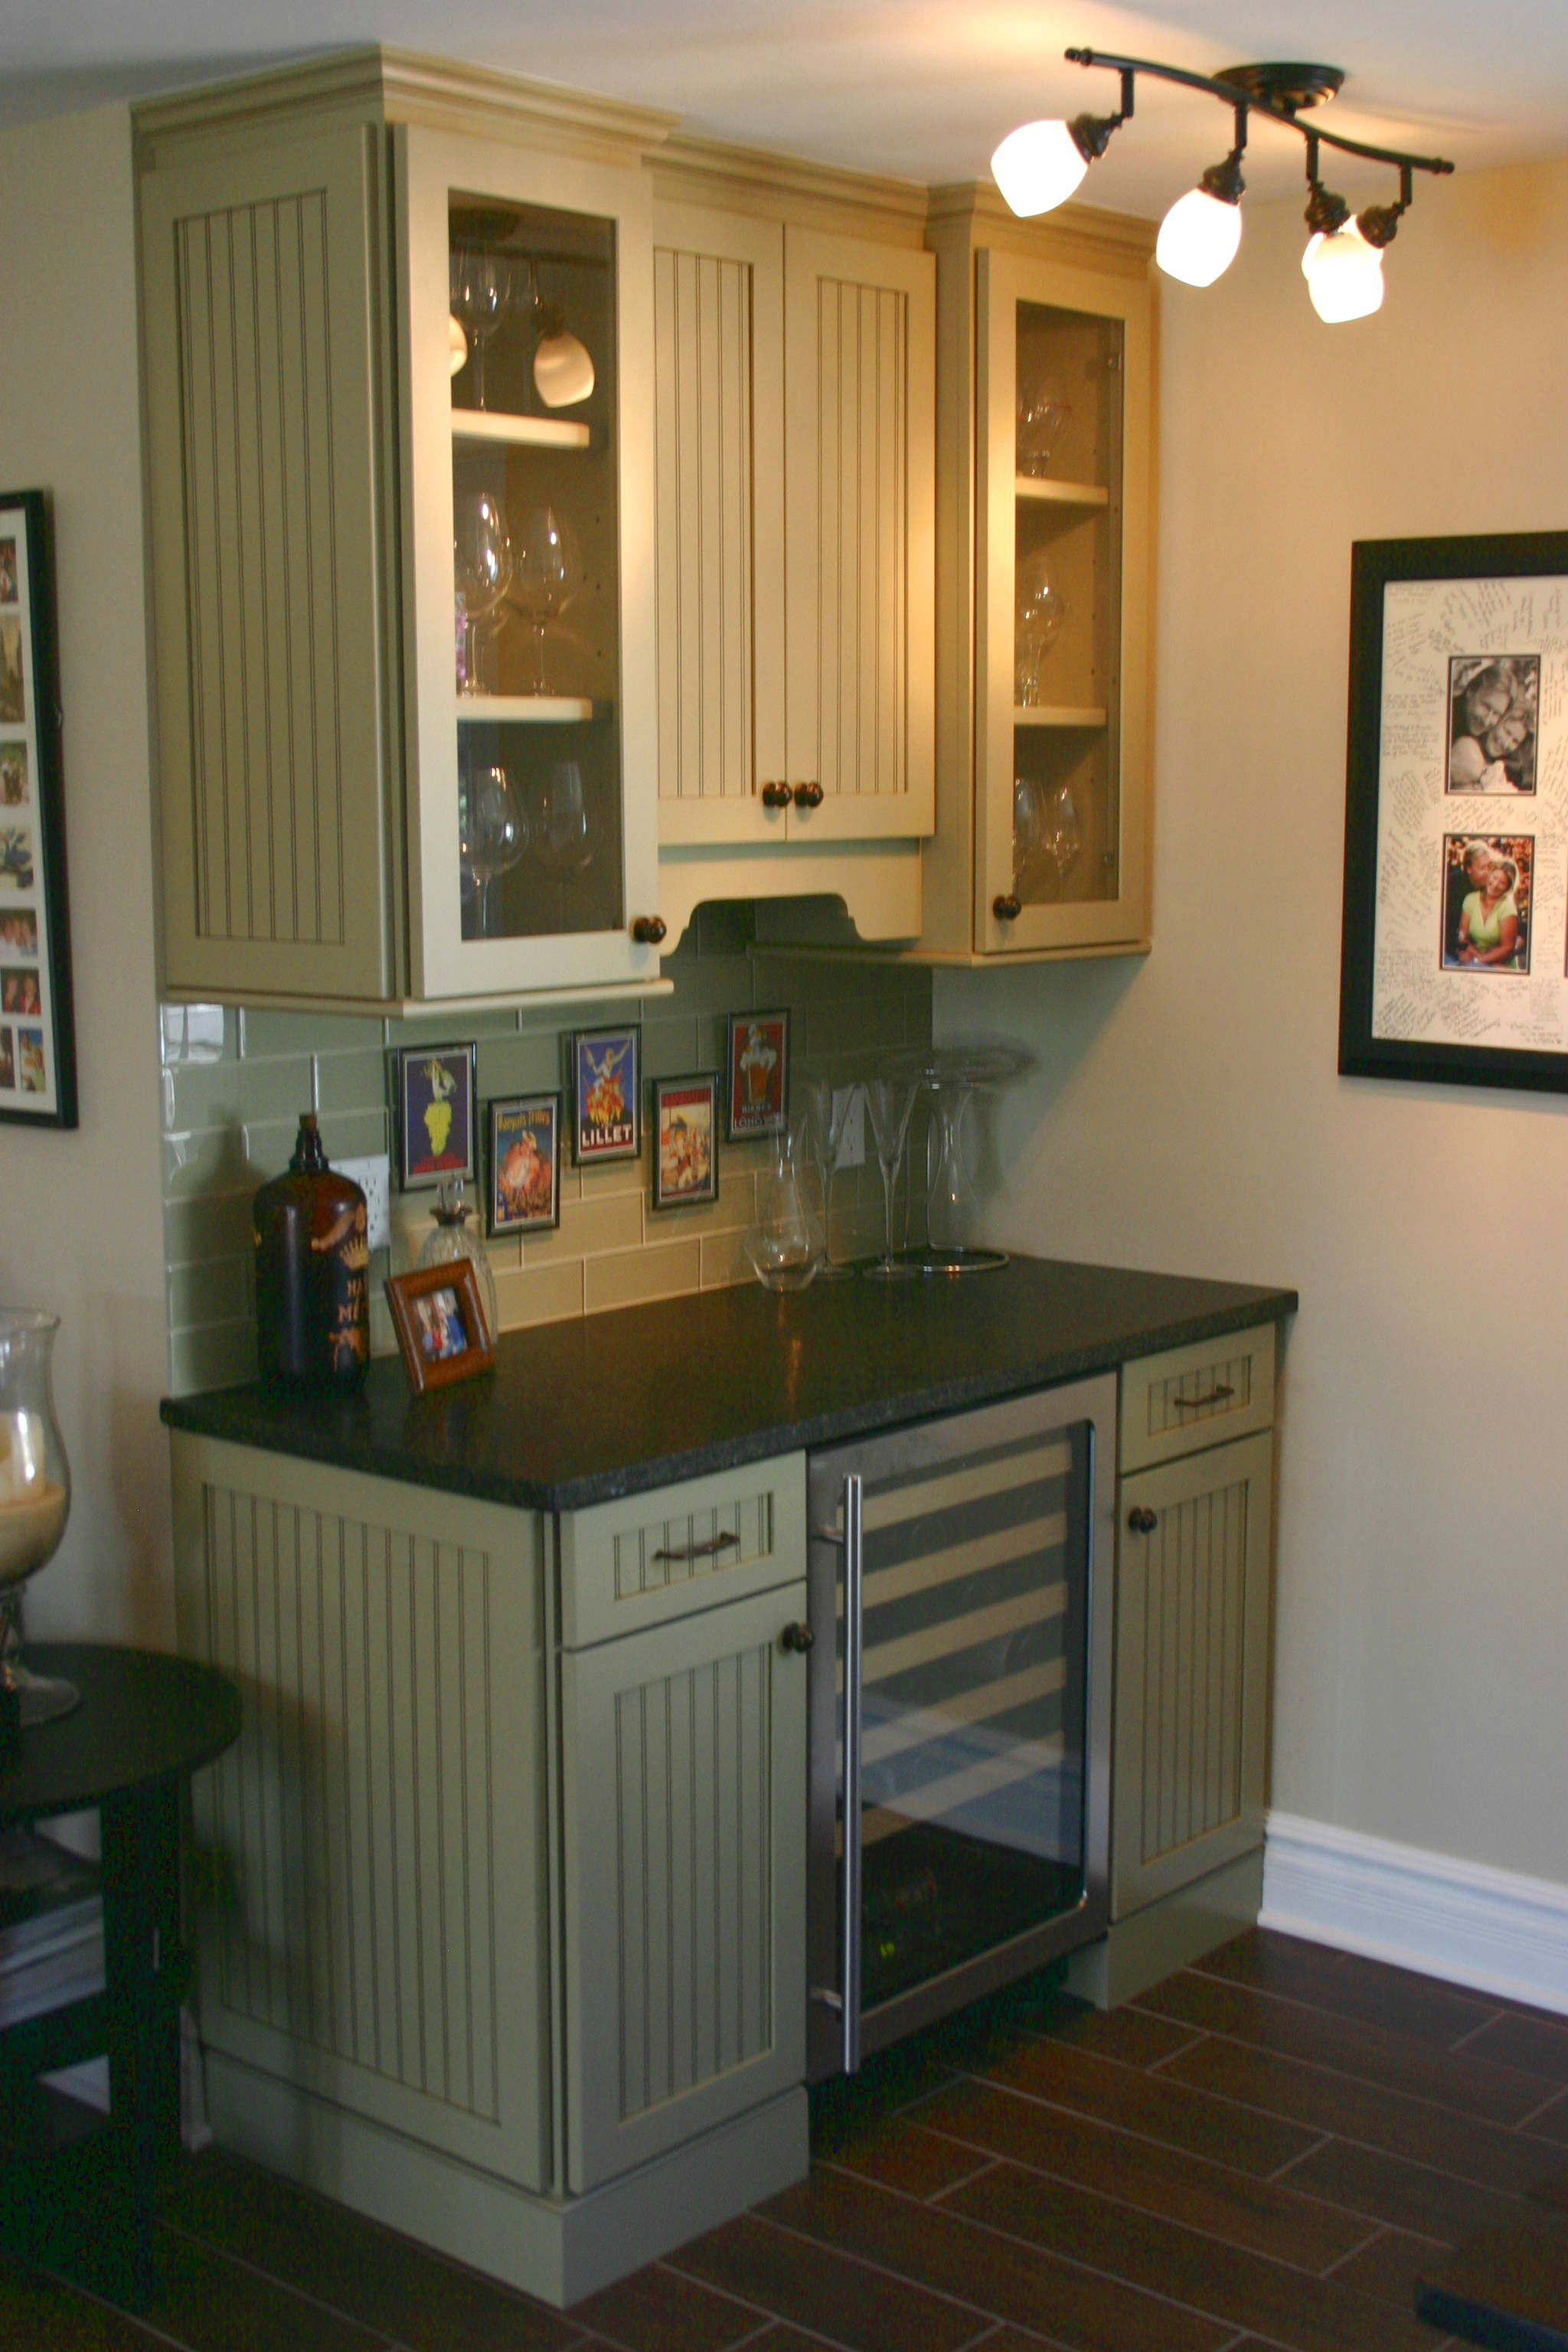 Bath Kitchen Remodeling Ideas bkc kitchen and bath kitchen remodel mid continent cabinetry